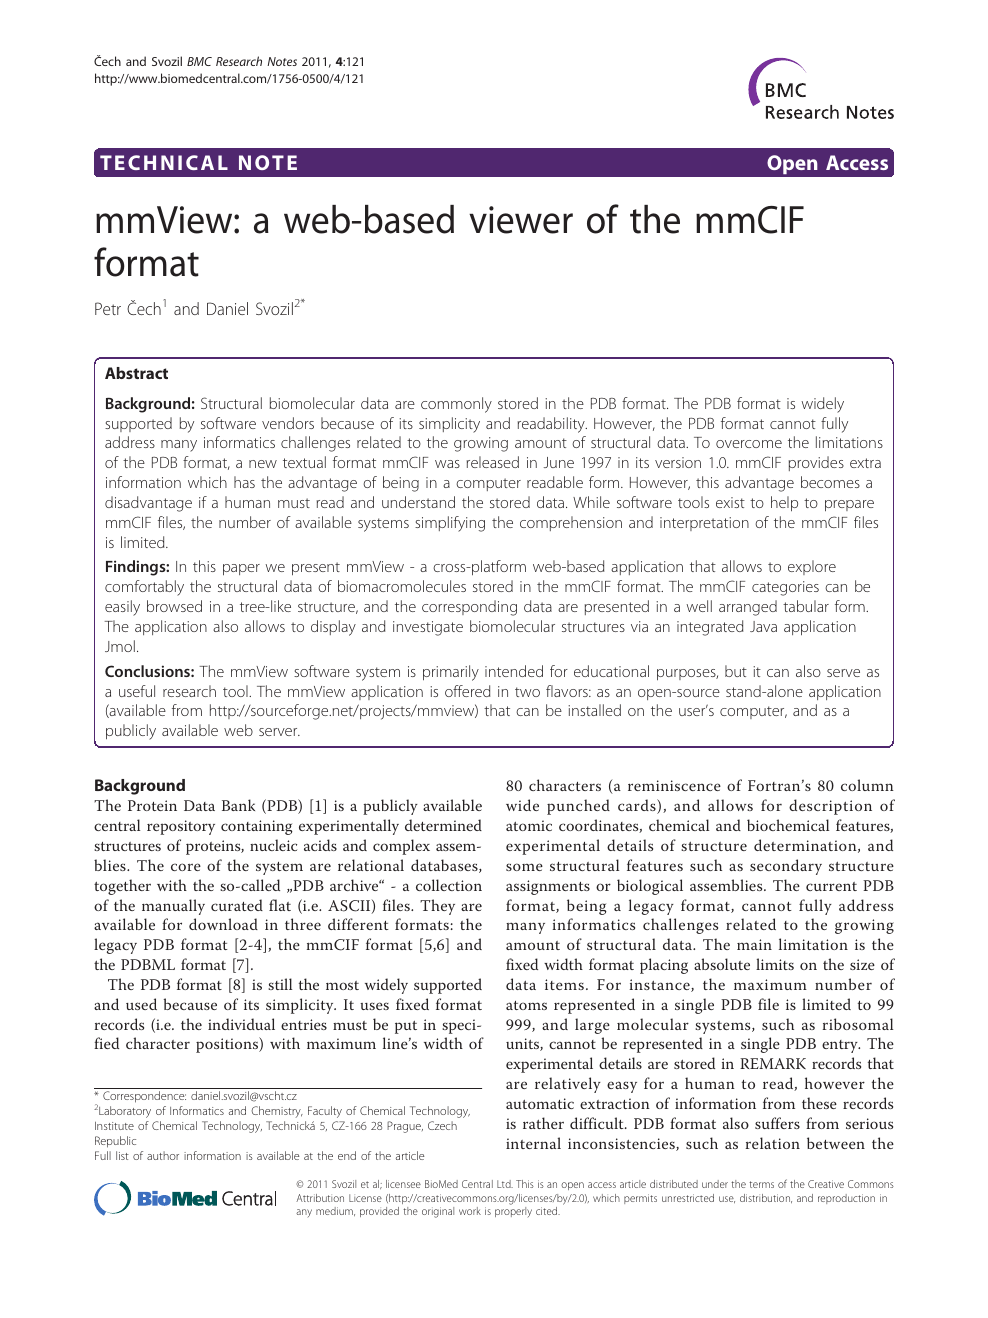 mmView: a web-based viewer of the mmCIF format – topic of